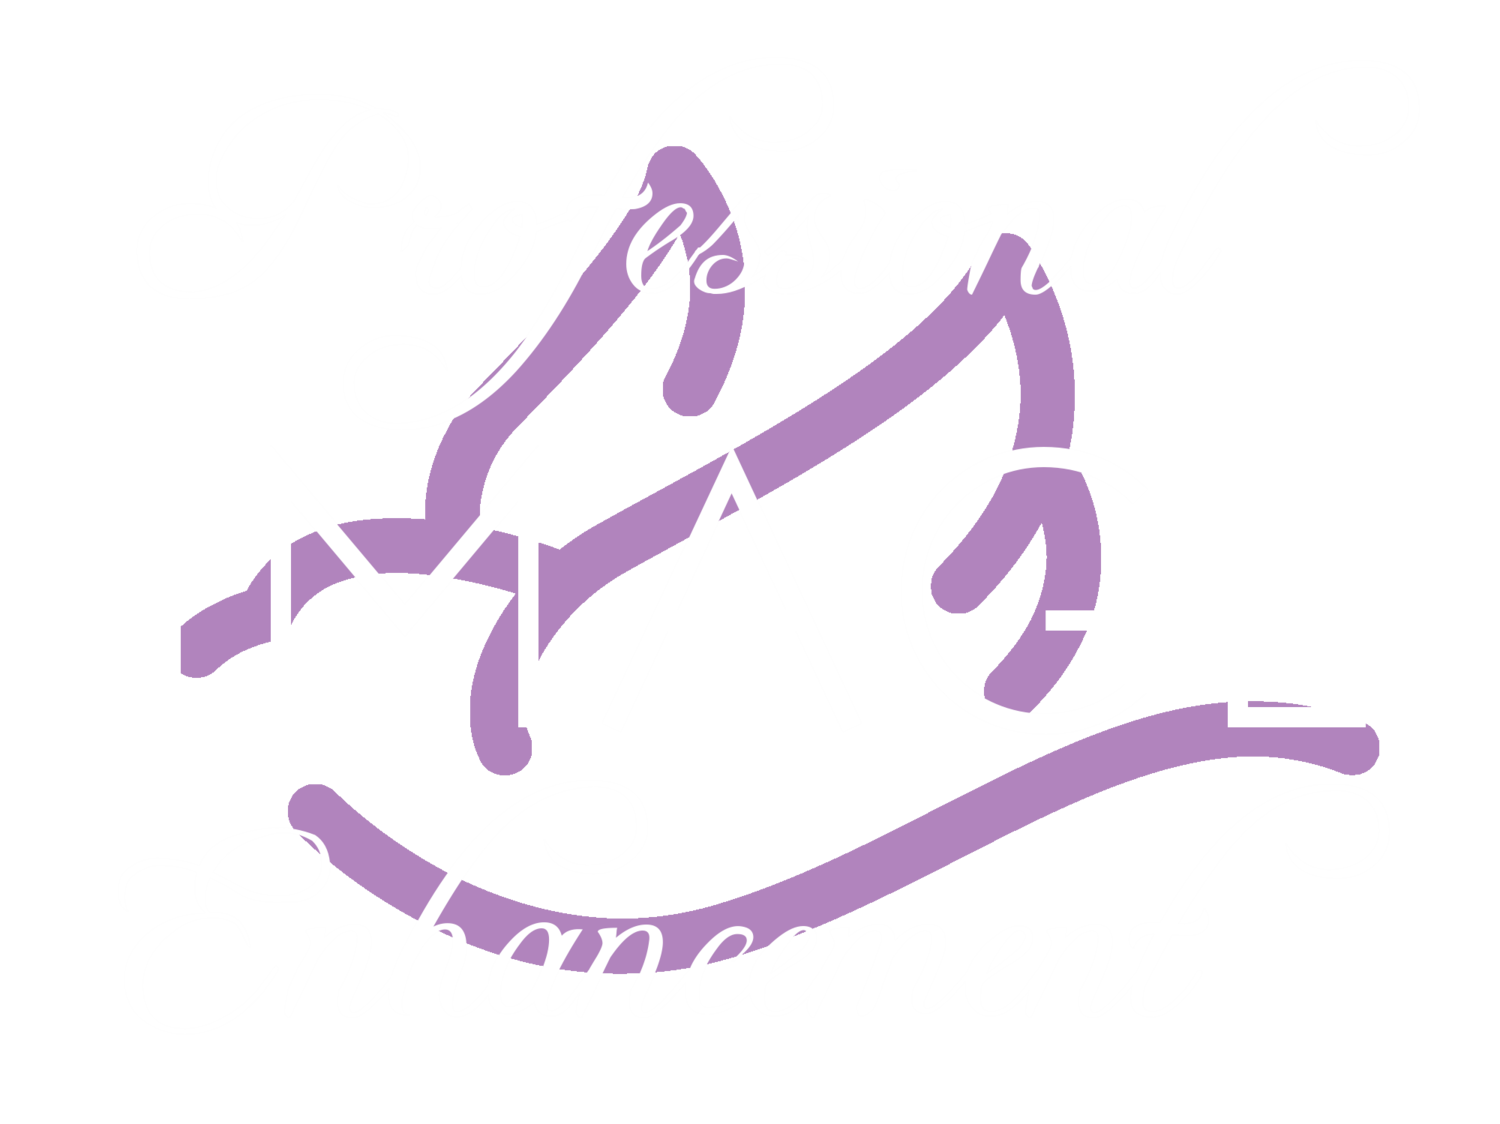 Professional Image Enhancement